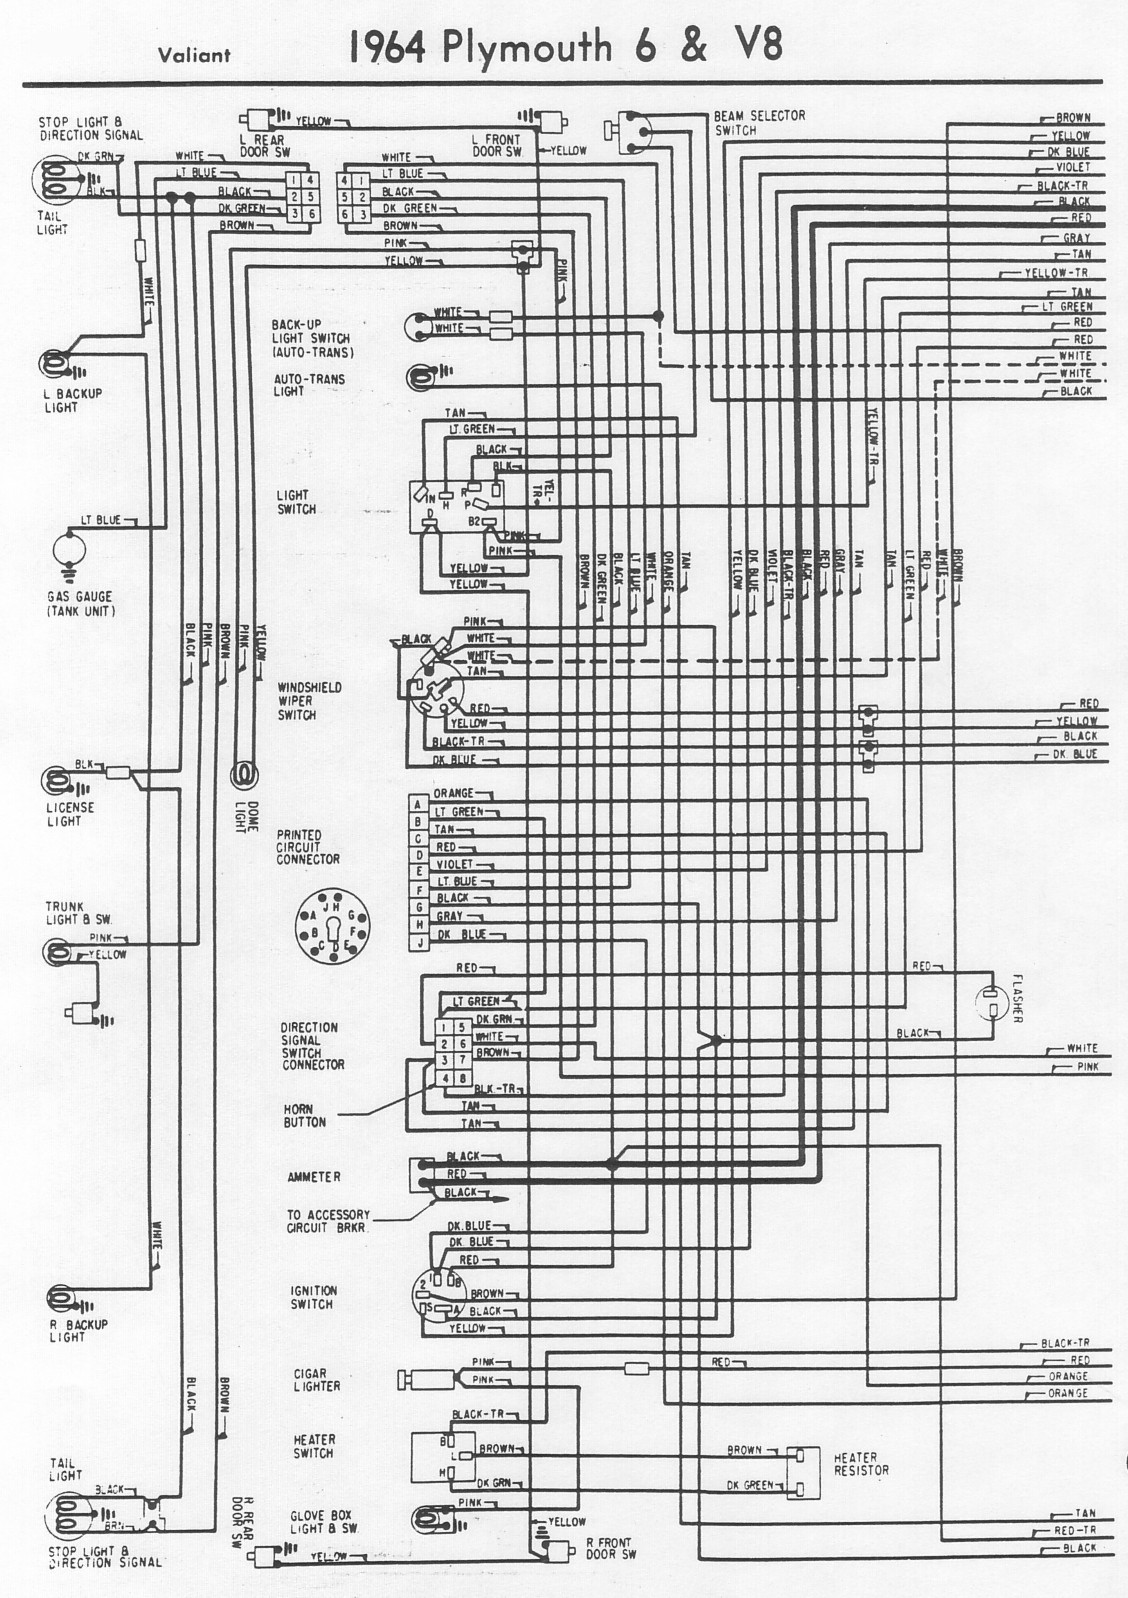 wiring diagram for 1966 plymouth valiant diagram base website ...  diagram database site full edition - unlimited full edition ...